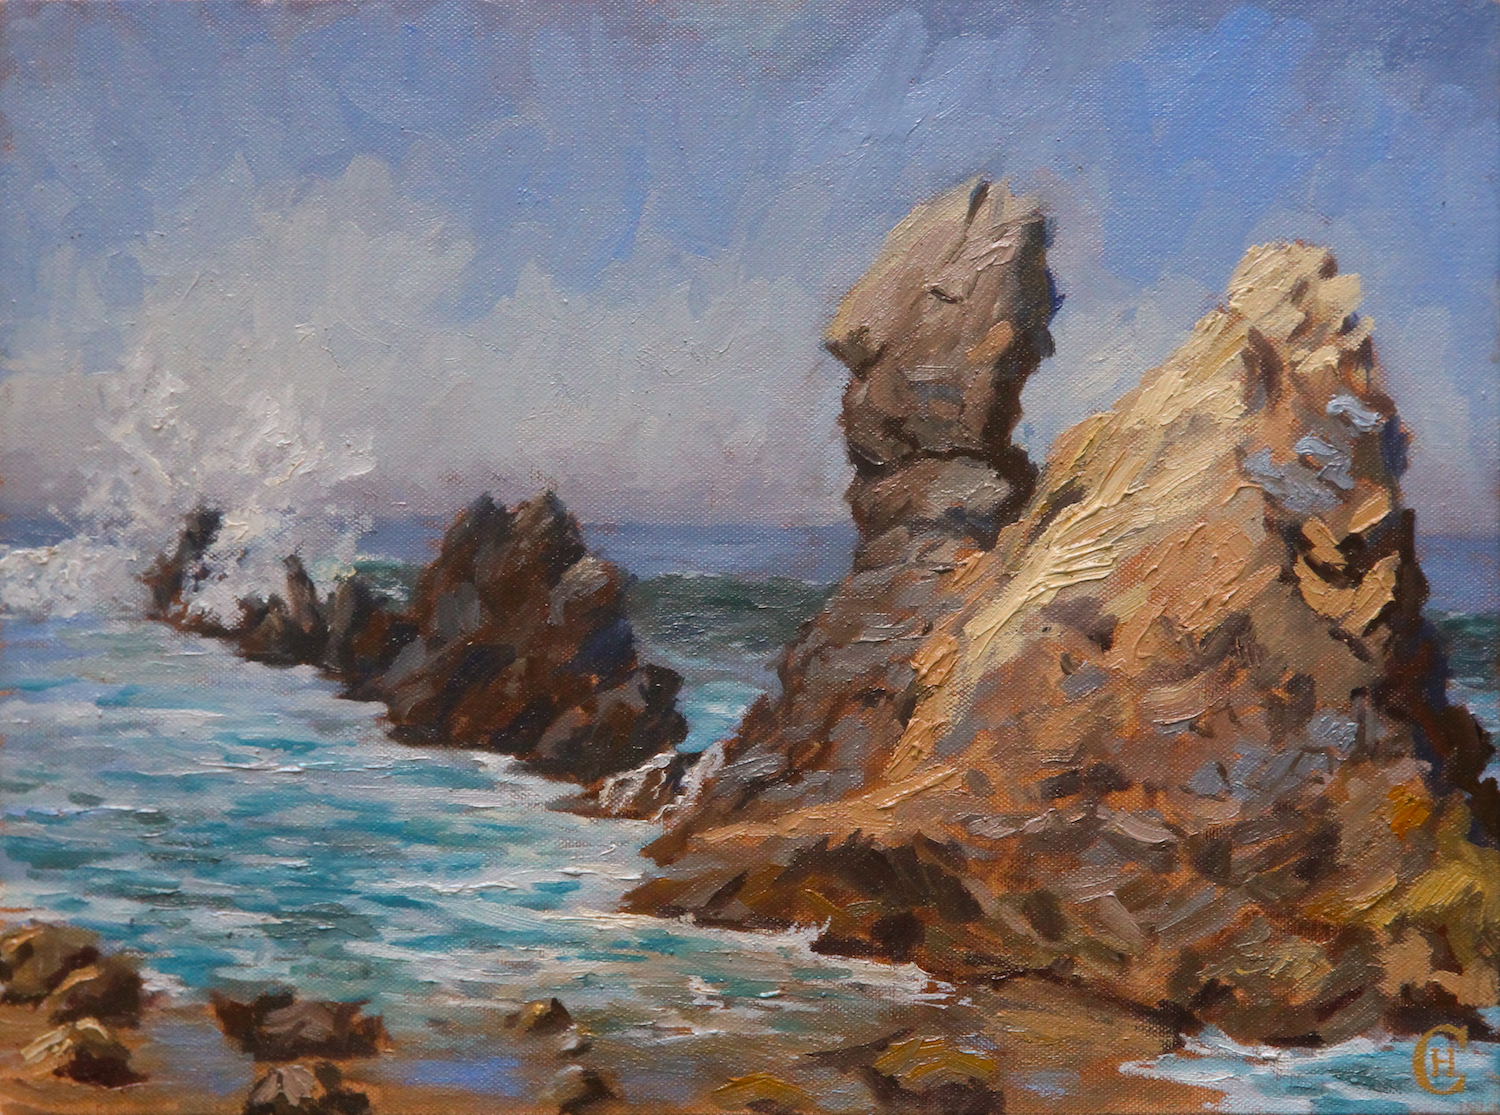 Chapman Hamborg art cystal cove rocks co